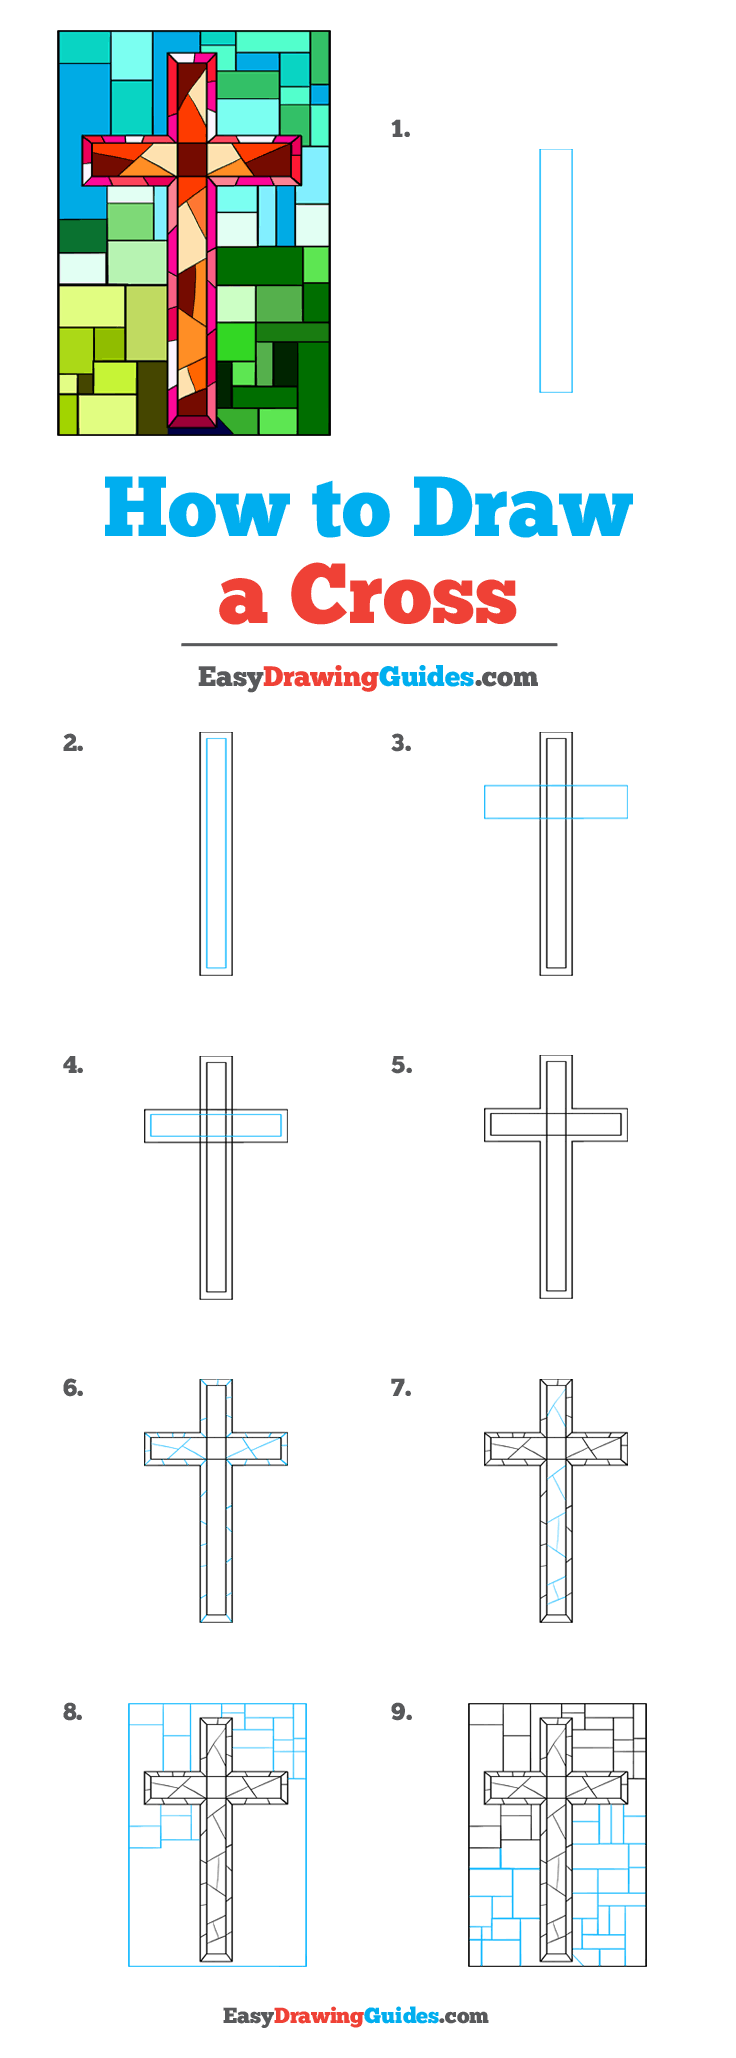 How To Draw A Cross Step By Step : cross, Cross, Really, Drawing, Tutorial